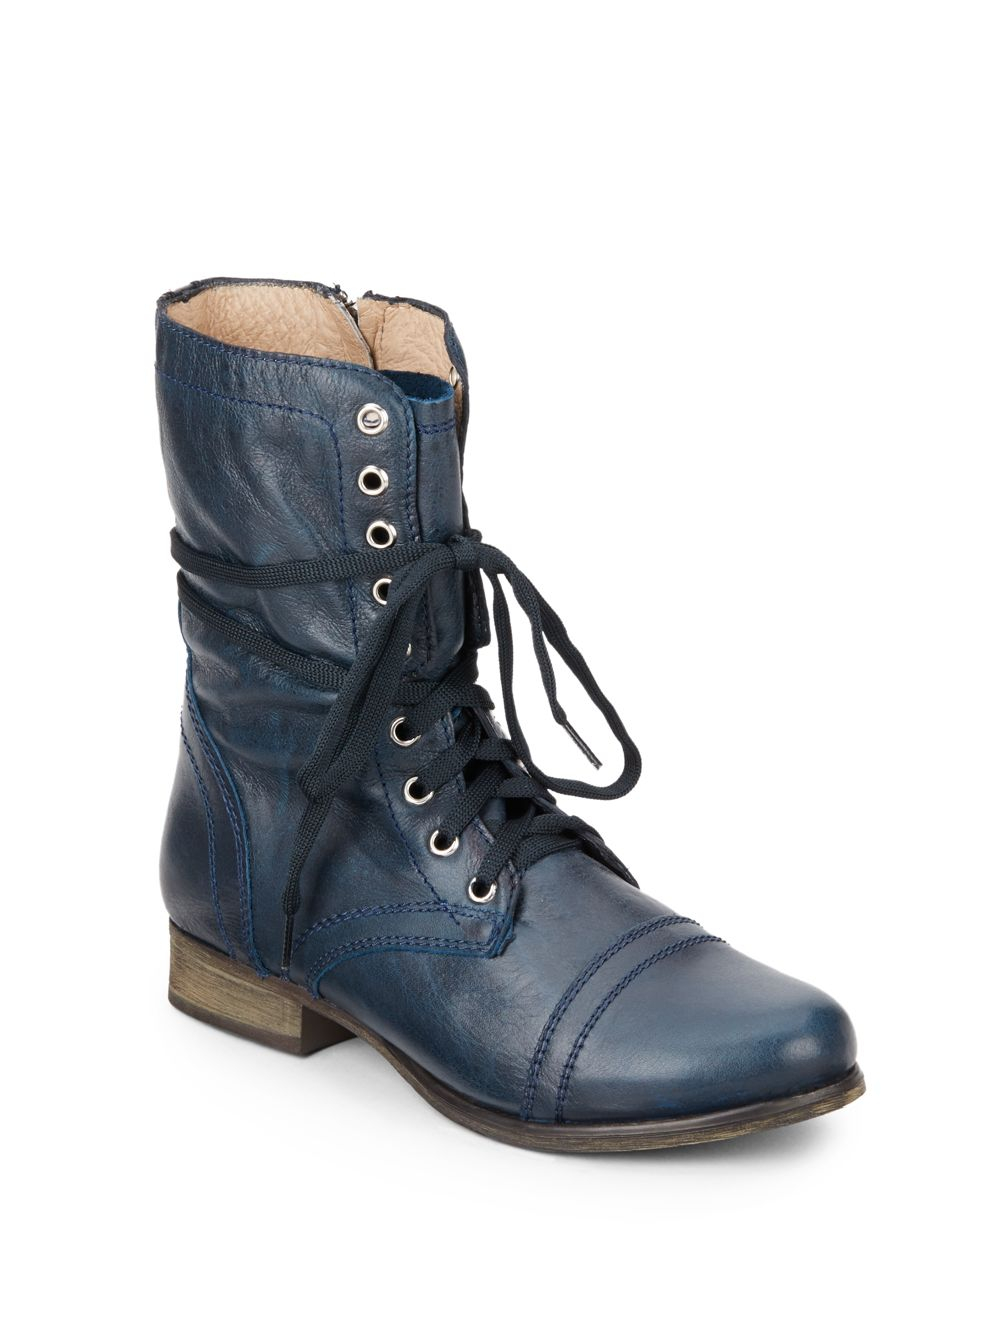 Steve Madden Troopa Leather Combat Boots In Blue Denim